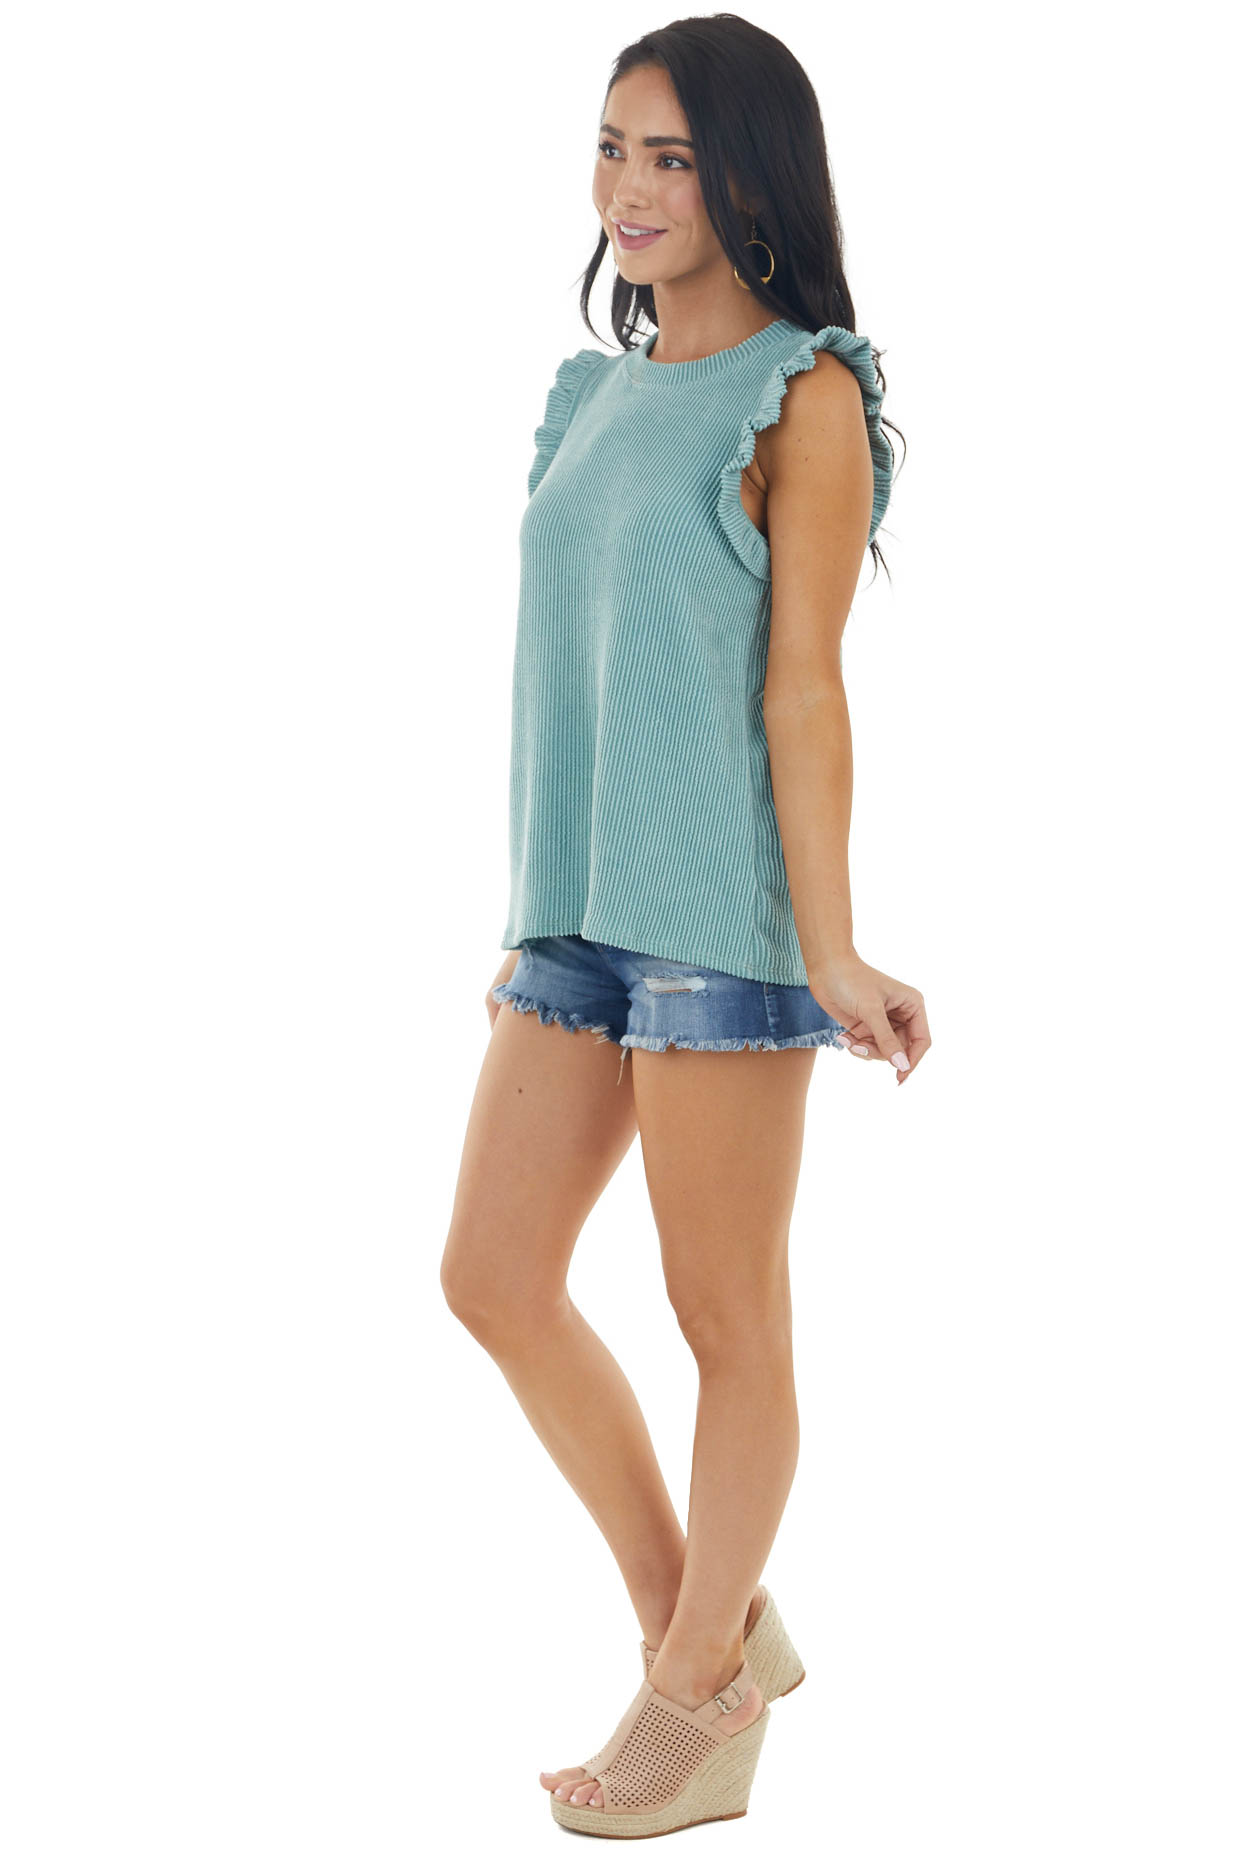 Vintage Juniper Sleeveless Ribbed Knit Top with Ruffles